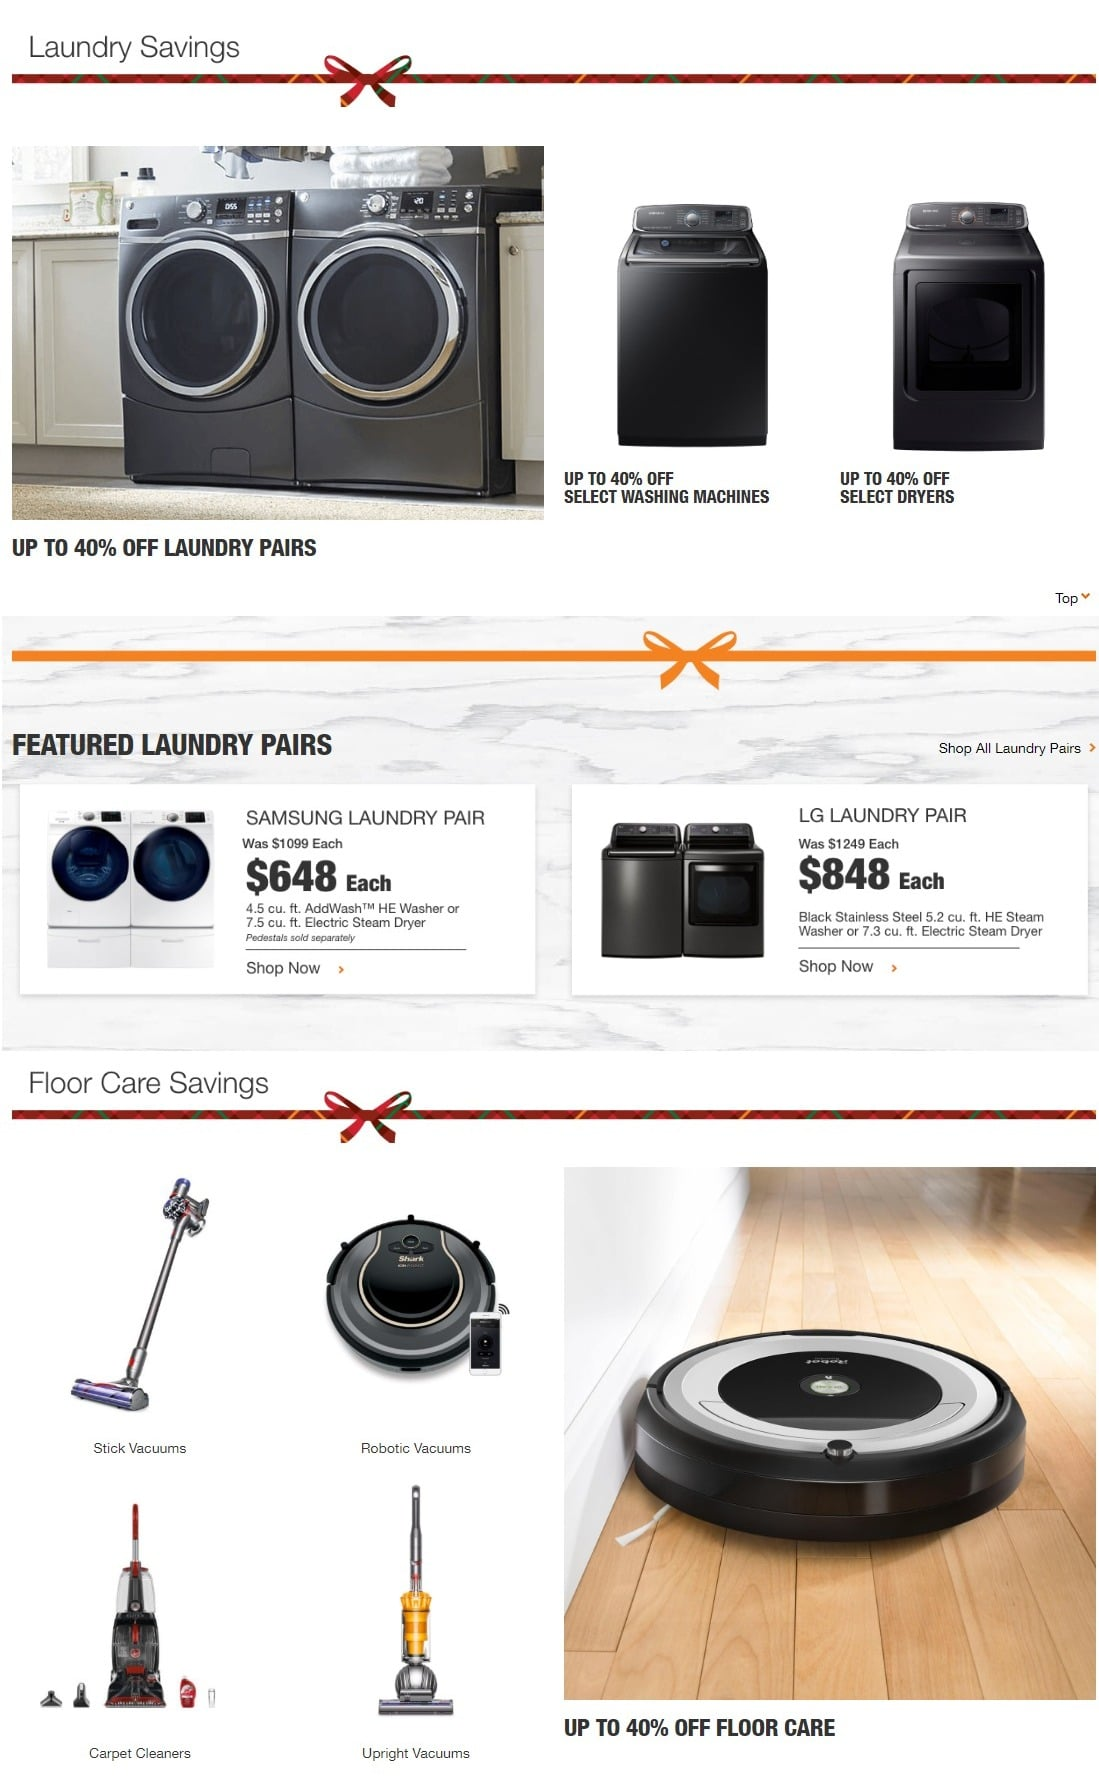 Home Depot Black Friday Appliance Savings Ad 2018